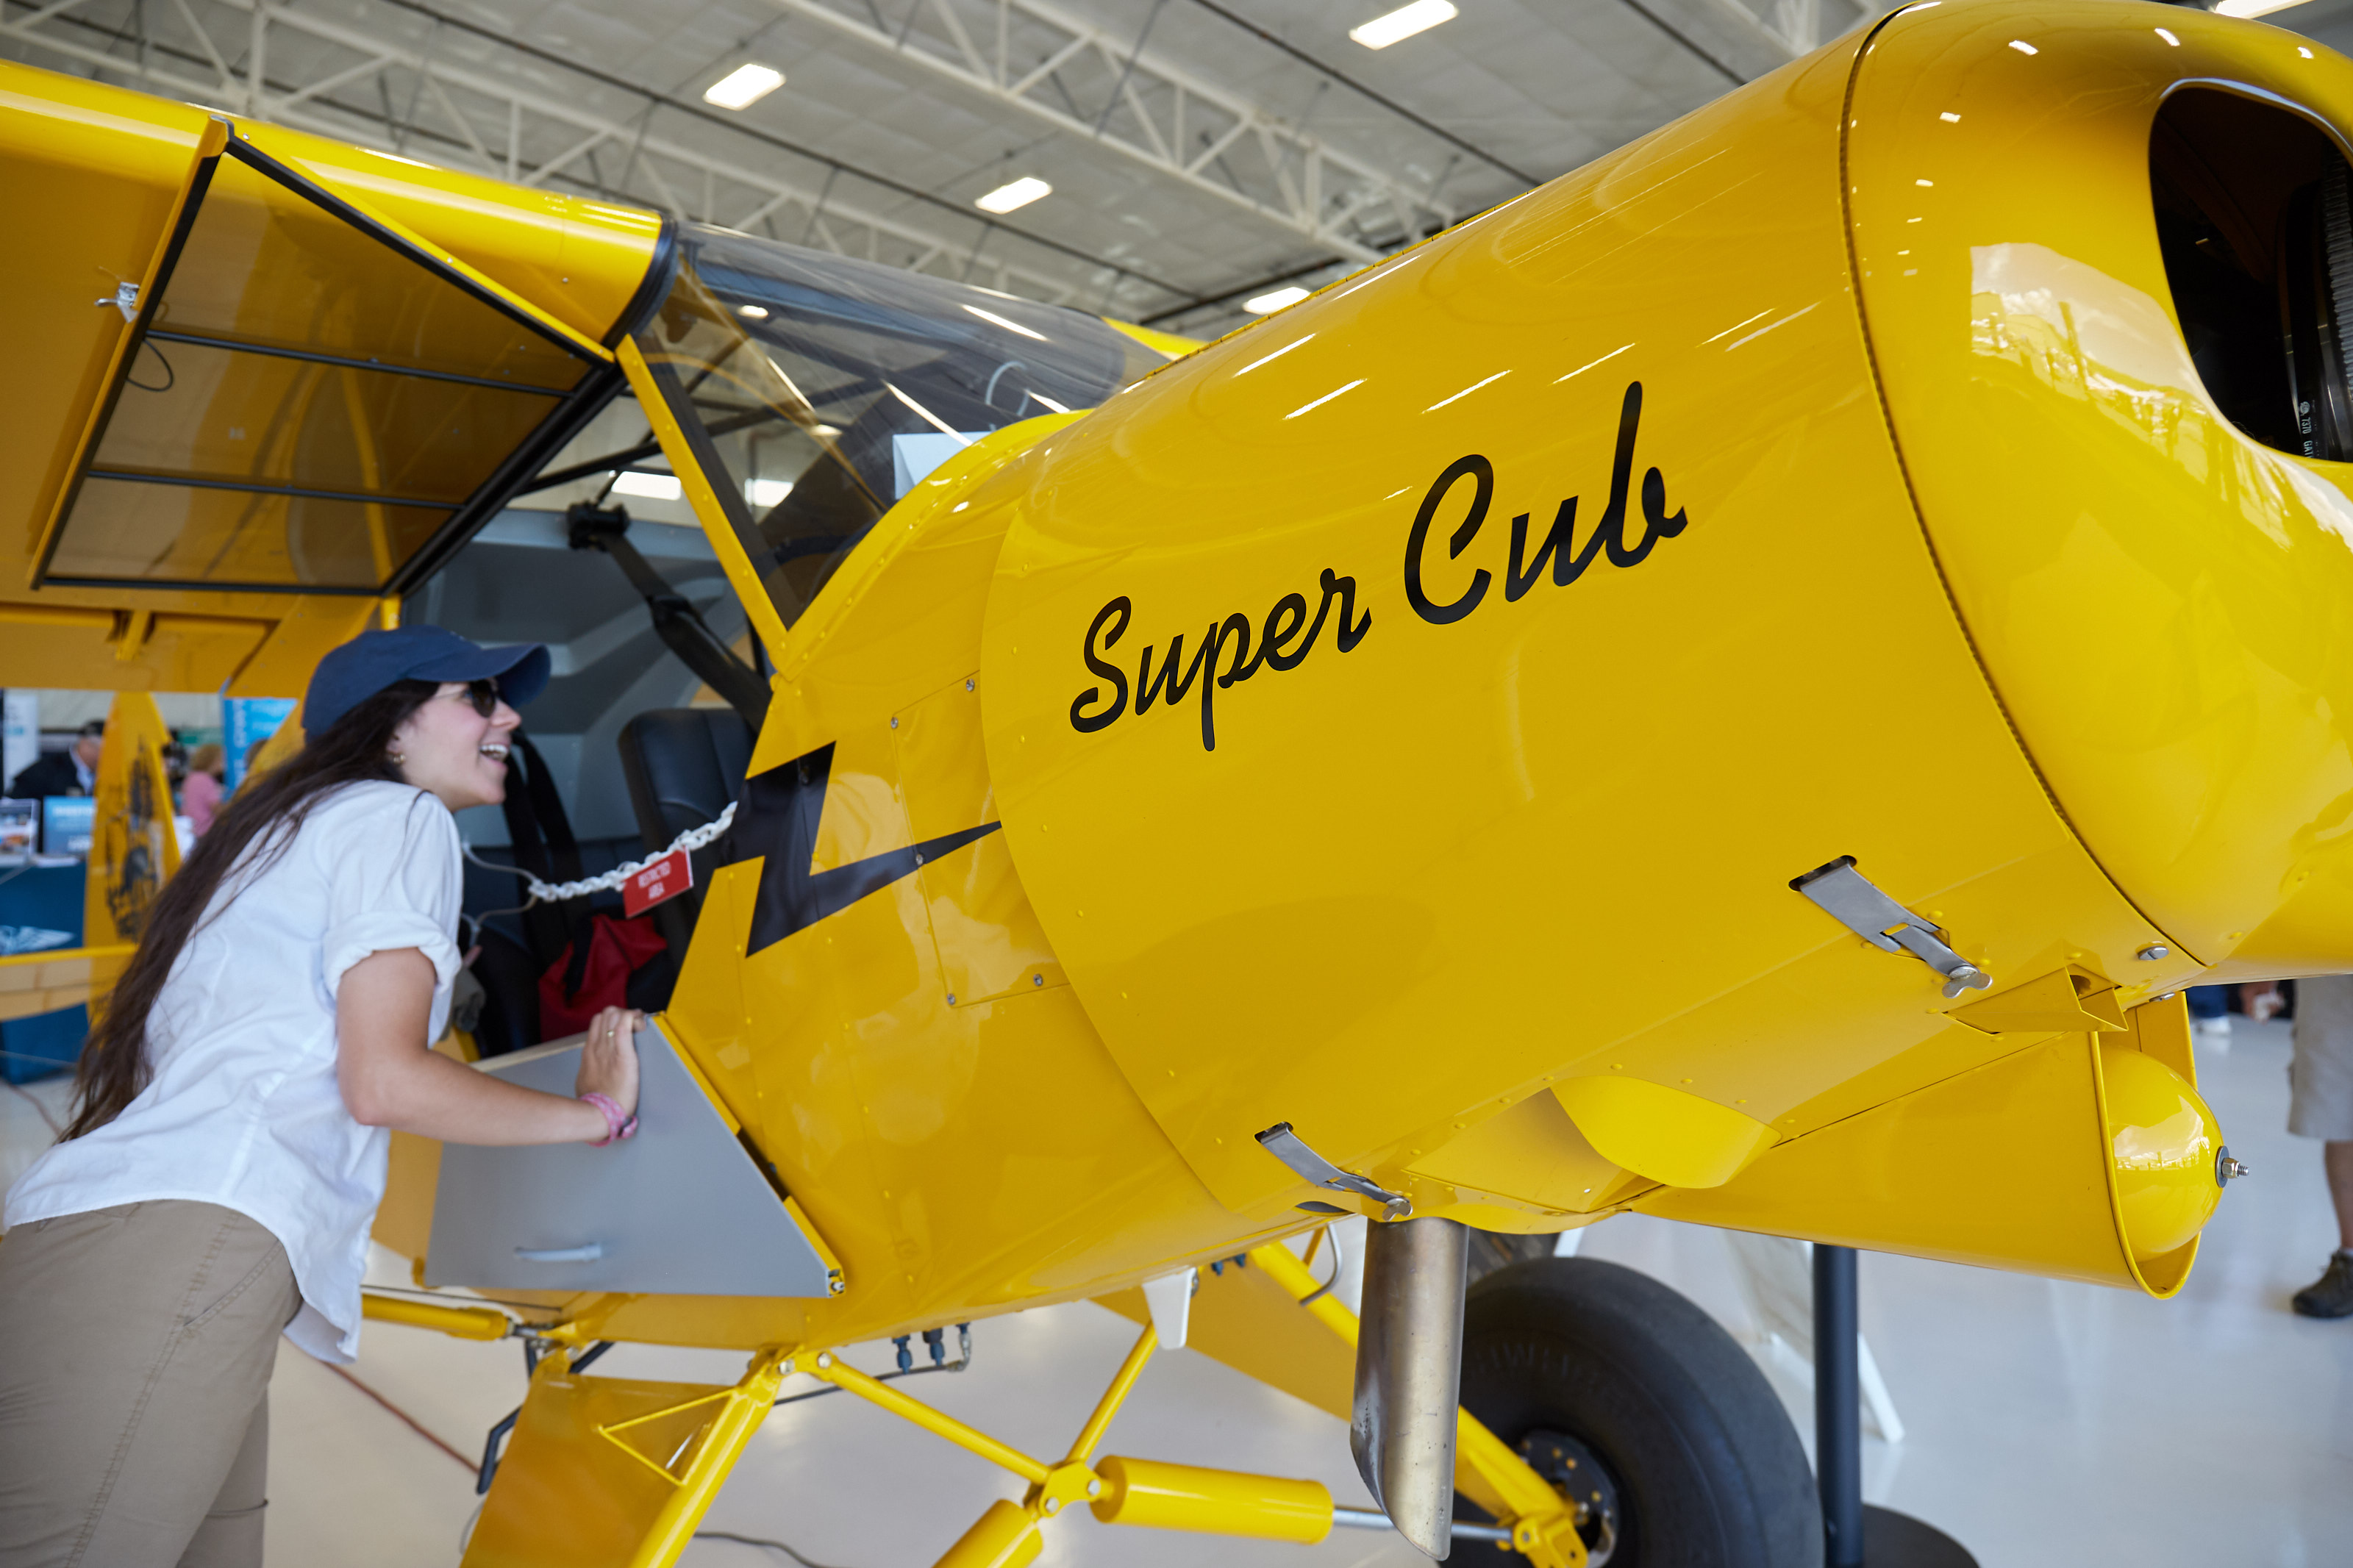 The Sweepstakes Super Cub draws attention during the AOPA Fly-In at Missoula, Montana. Photo by Mike Fizer.